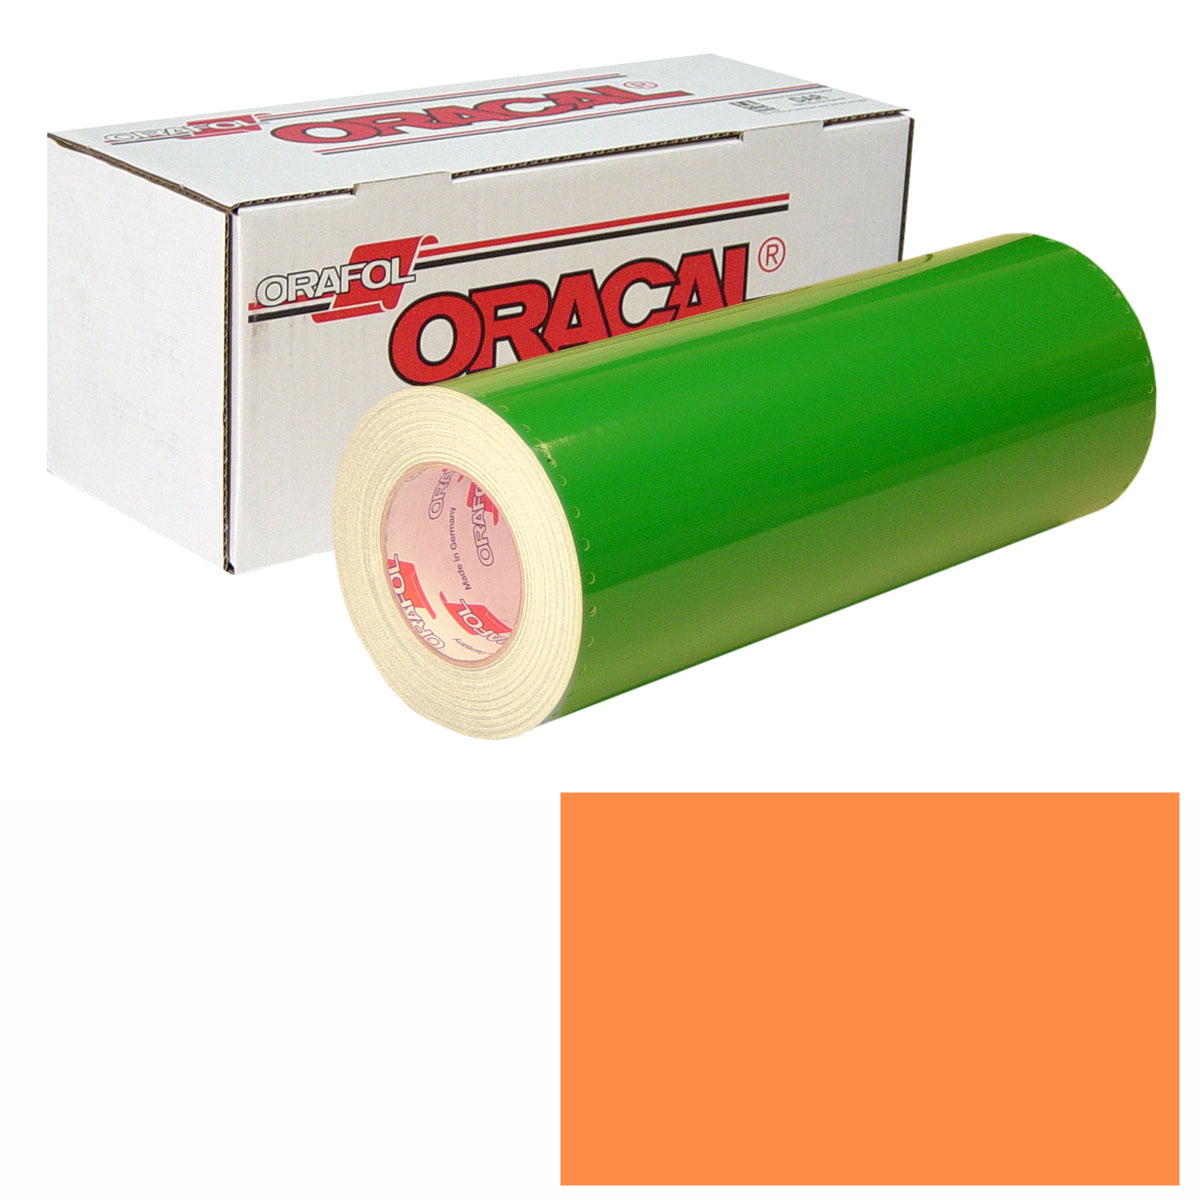 ORACAL 651 30In X 50Yd 036 Light Orange